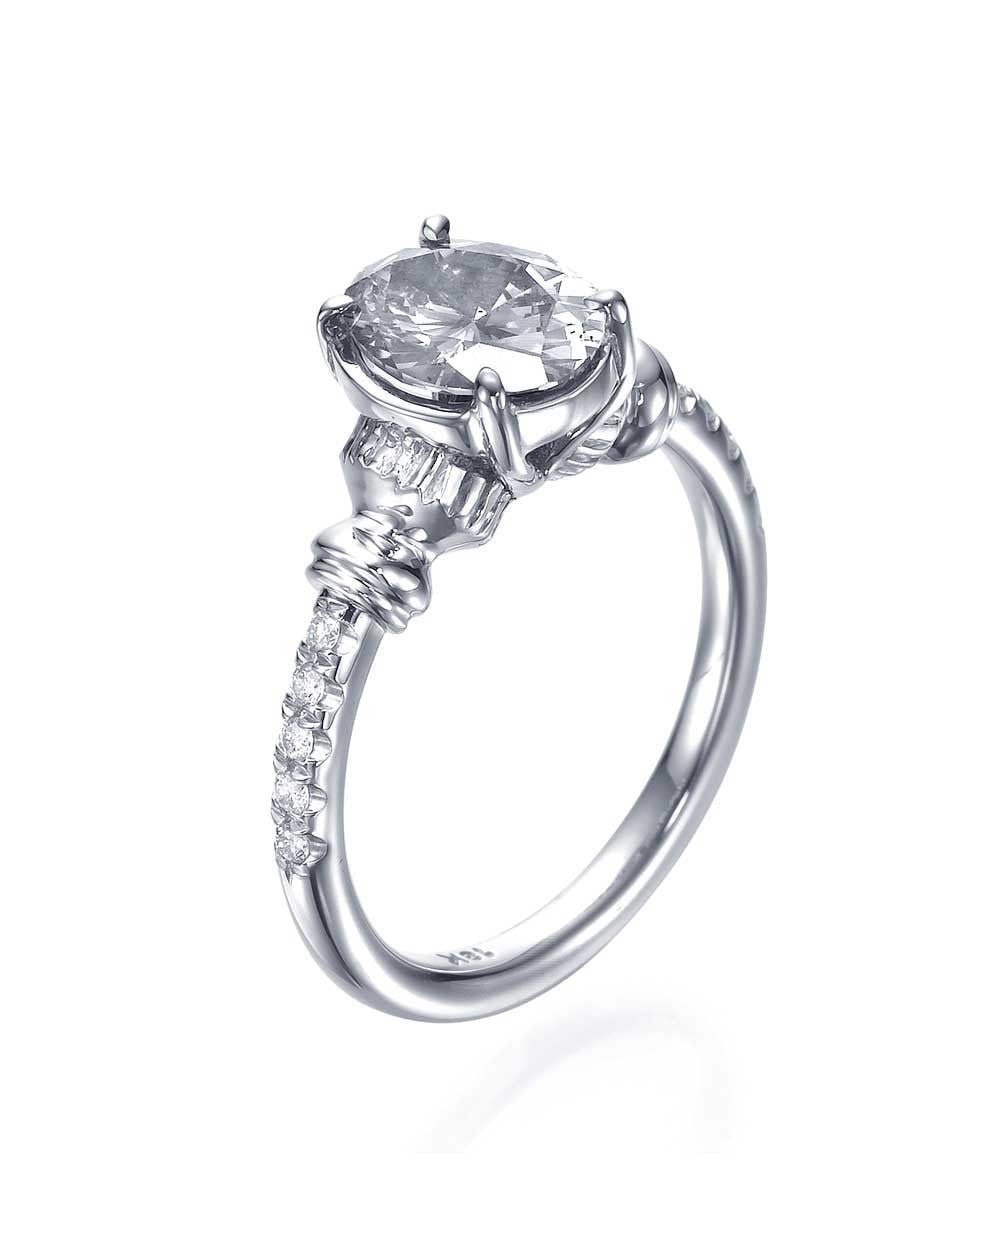 oval should wedding rings things you engagement diamond studio decor home know